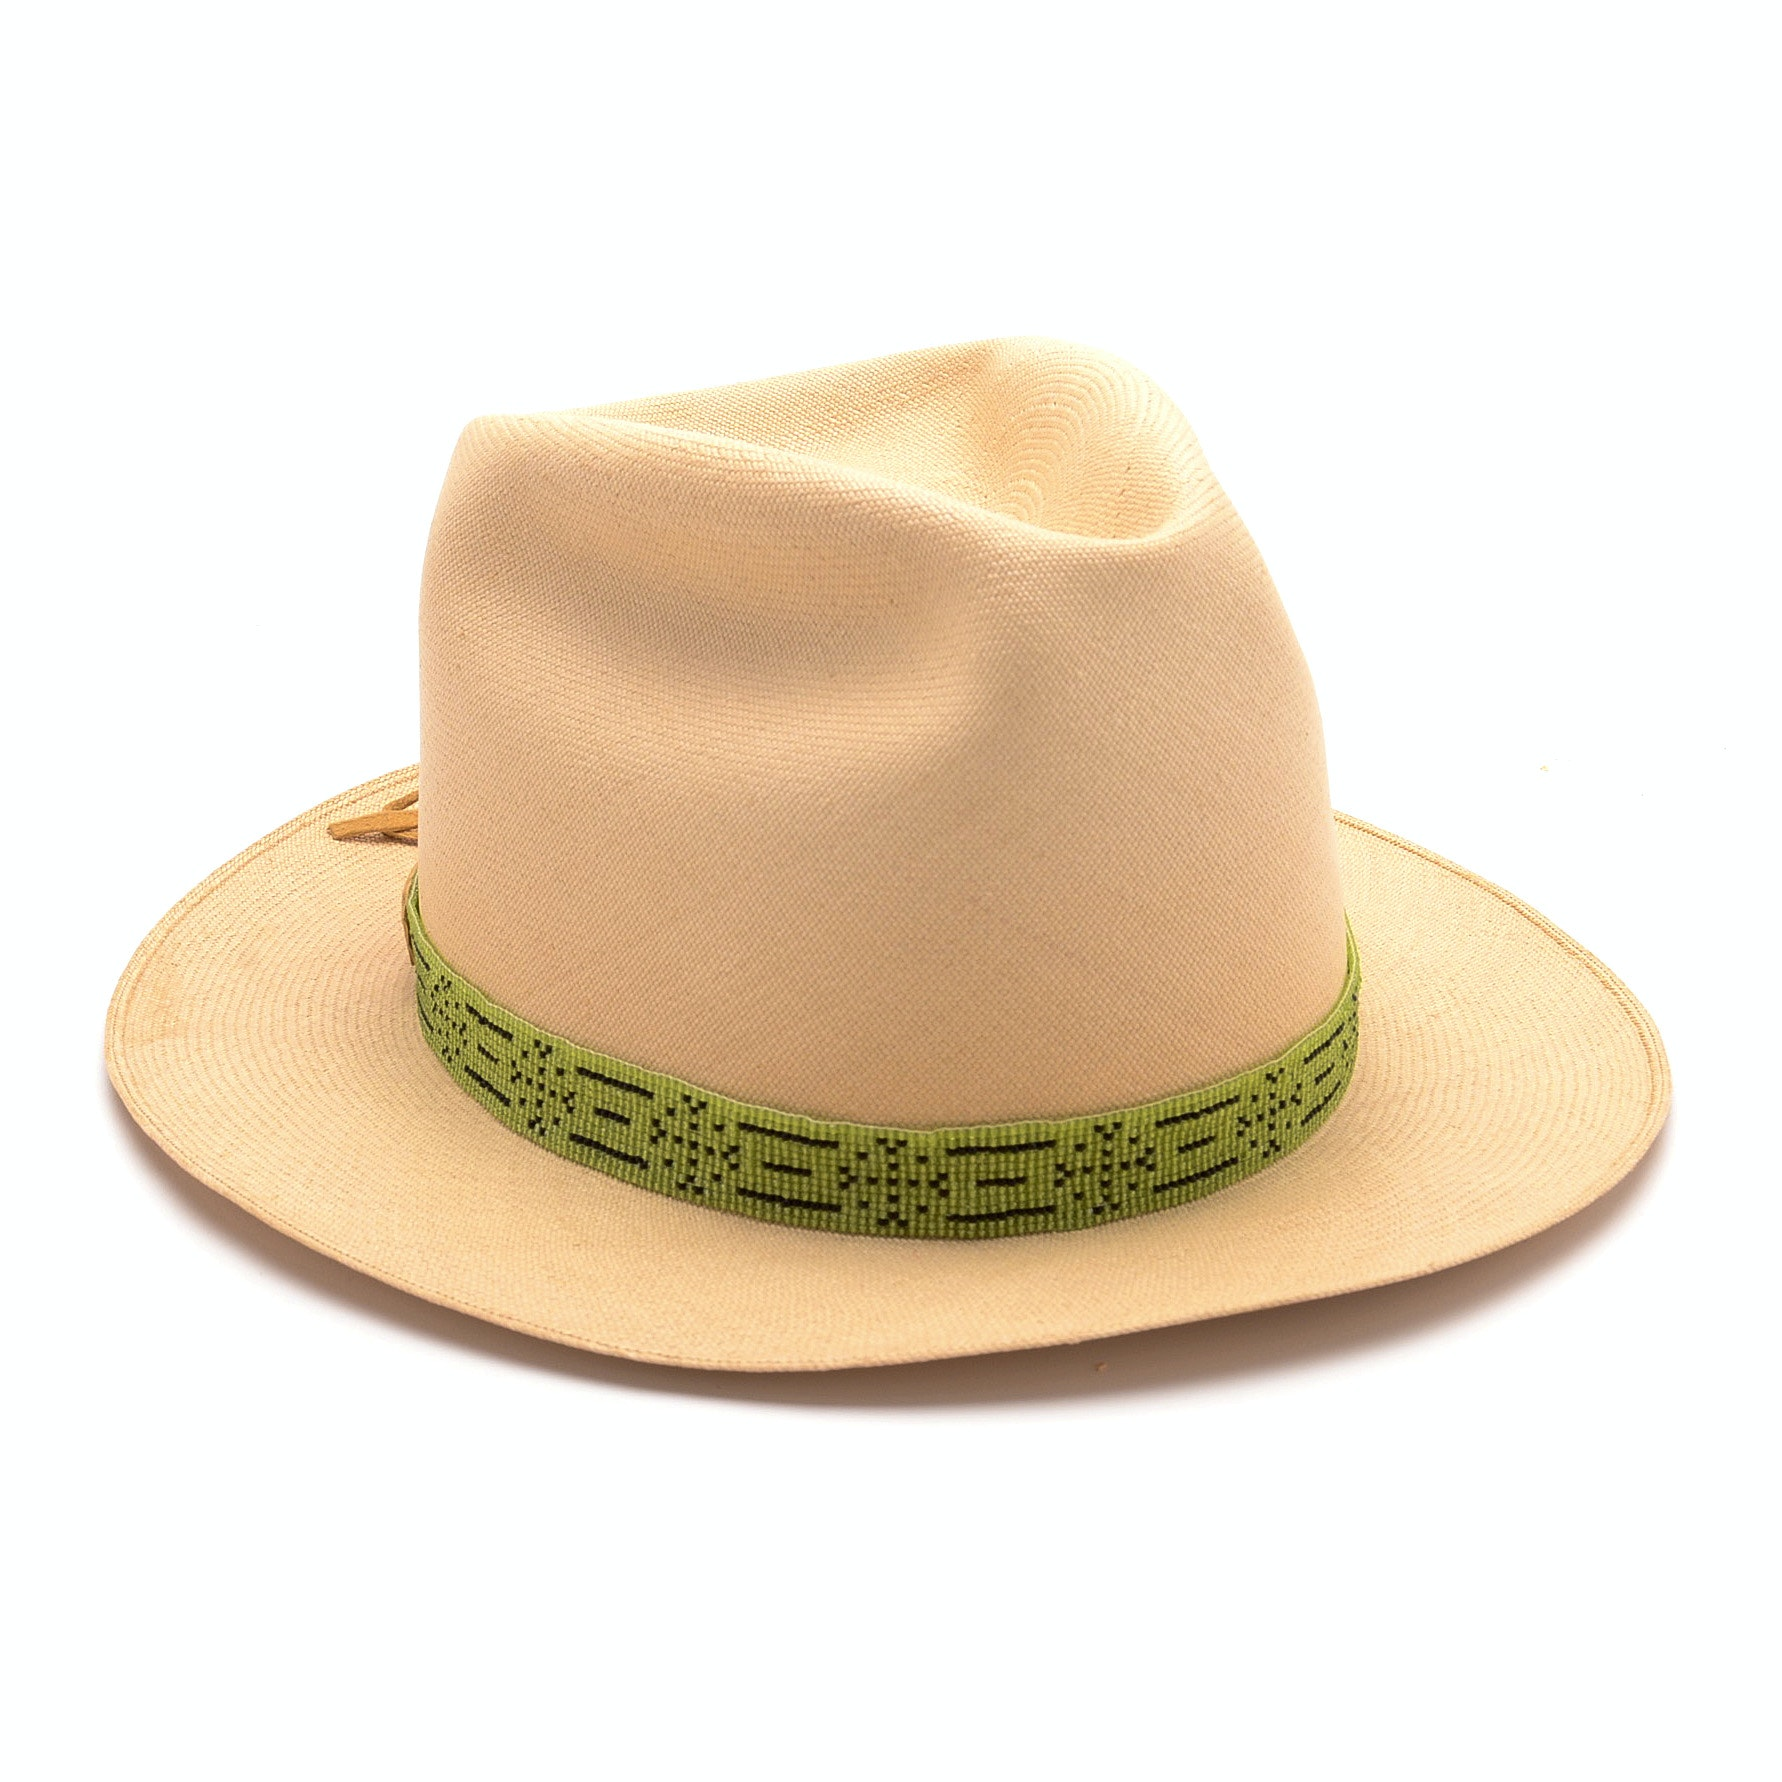 "Straw Panama Hat with Hand Beaded Leather Band from ""Monte Cristo Custom Hat Works"" in Santa Fe for Neiman Marcus"